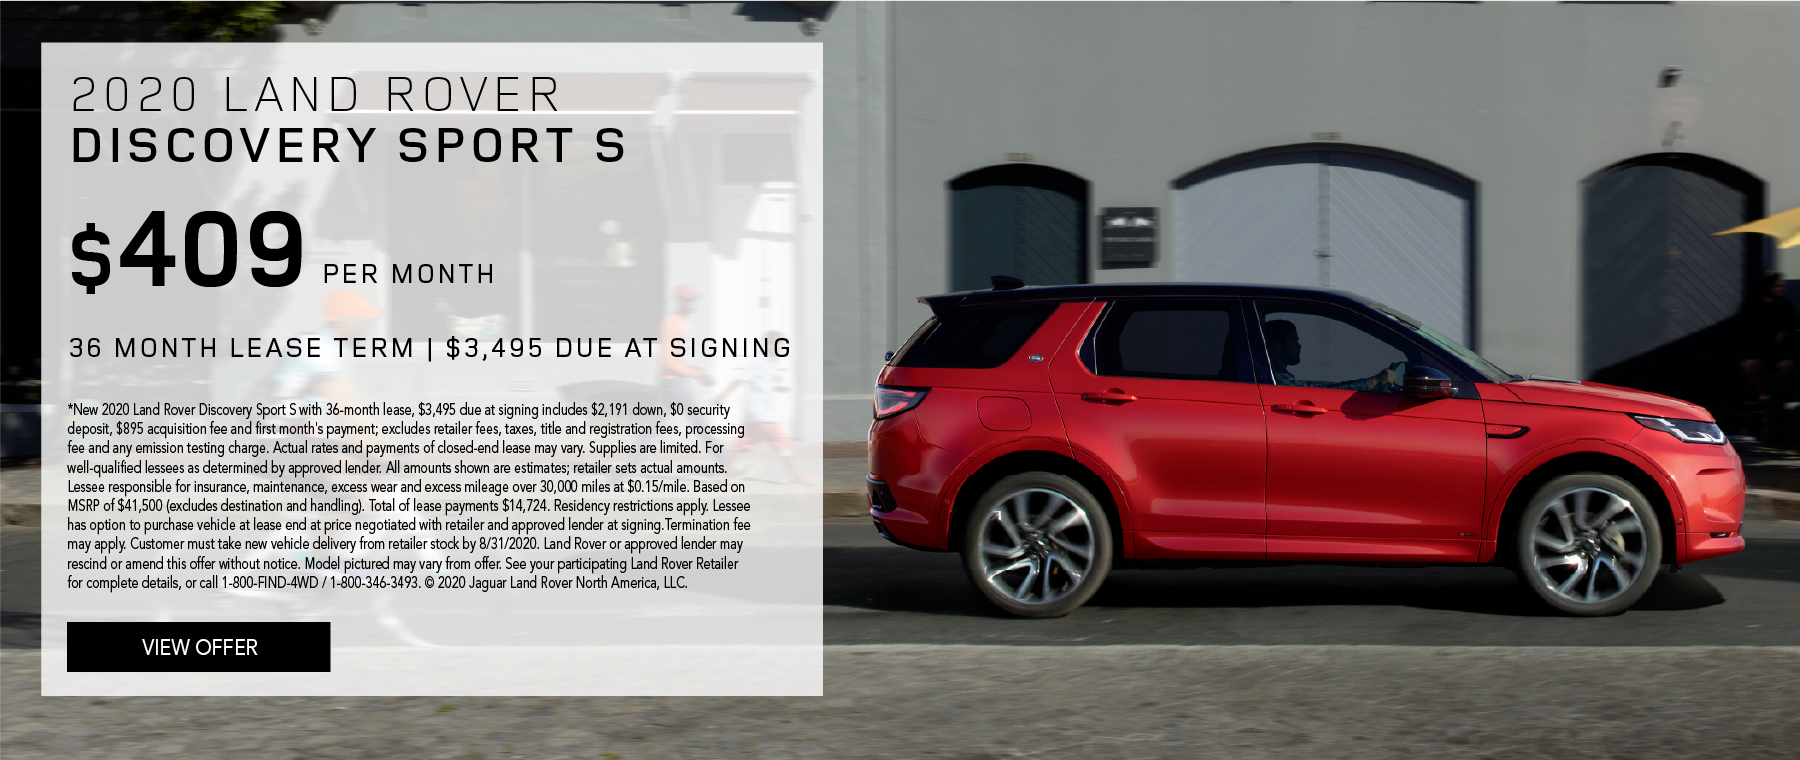 2020 LAND ROVER DISCOVERY SPORT S. $409 PER MONTH. 36 MONTH LEASE TERM. $3,495 CASH DUE AT SIGNING. $0 SECURITY DEPOSIT. 10,000 MILES PER YEAR. EXCLUDES RETAILER FEES, TAXES, TITLE AND REGISTRATION FEES, PROCESSING FEE AND ANY EMISSION TESTING CHARGE. OFFER ENDS 8/31/2020.